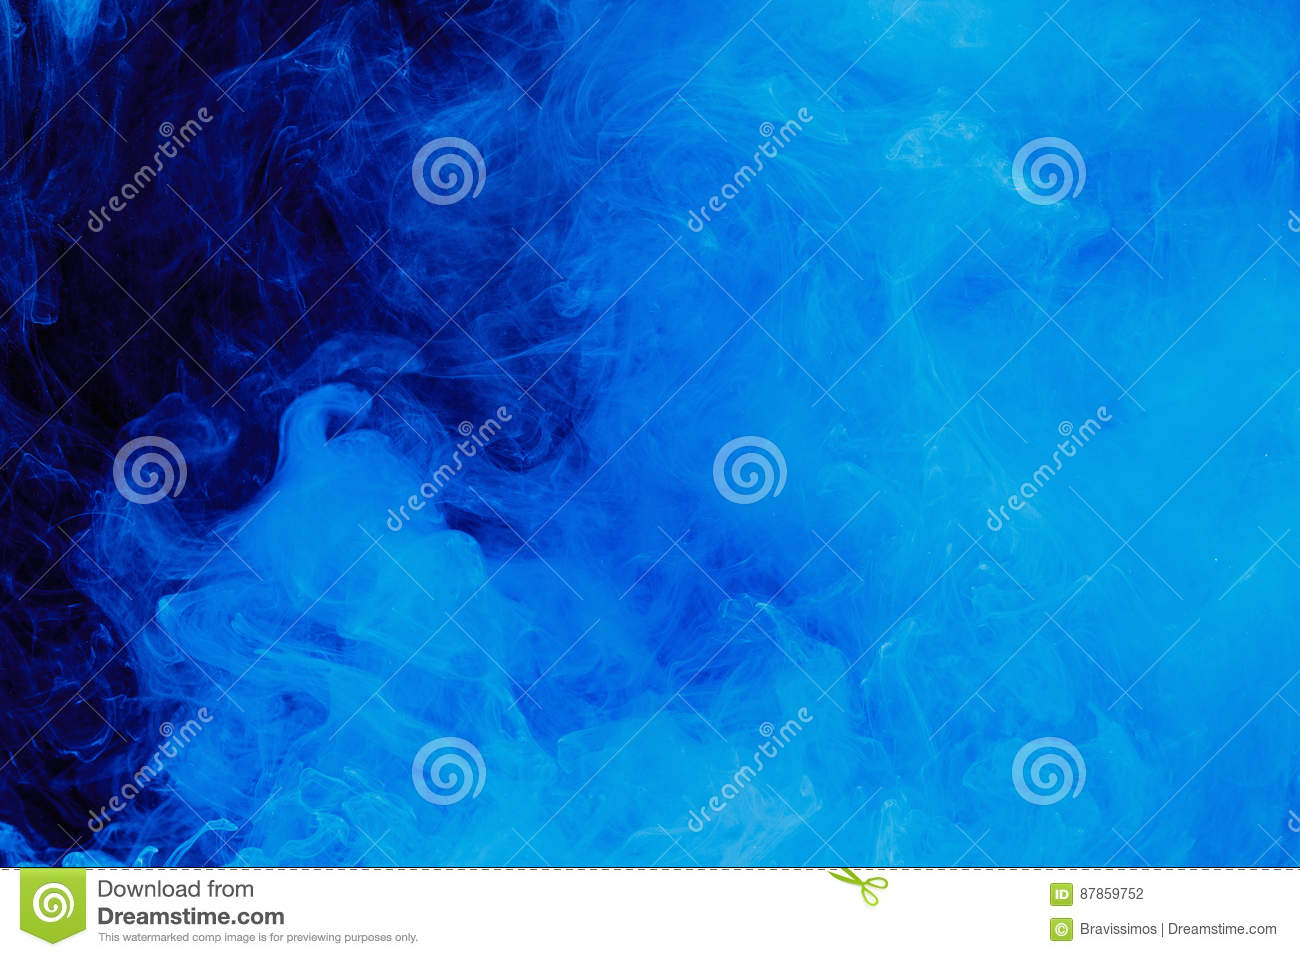 Abstract blue cloud pattern of white smoke on a black background.